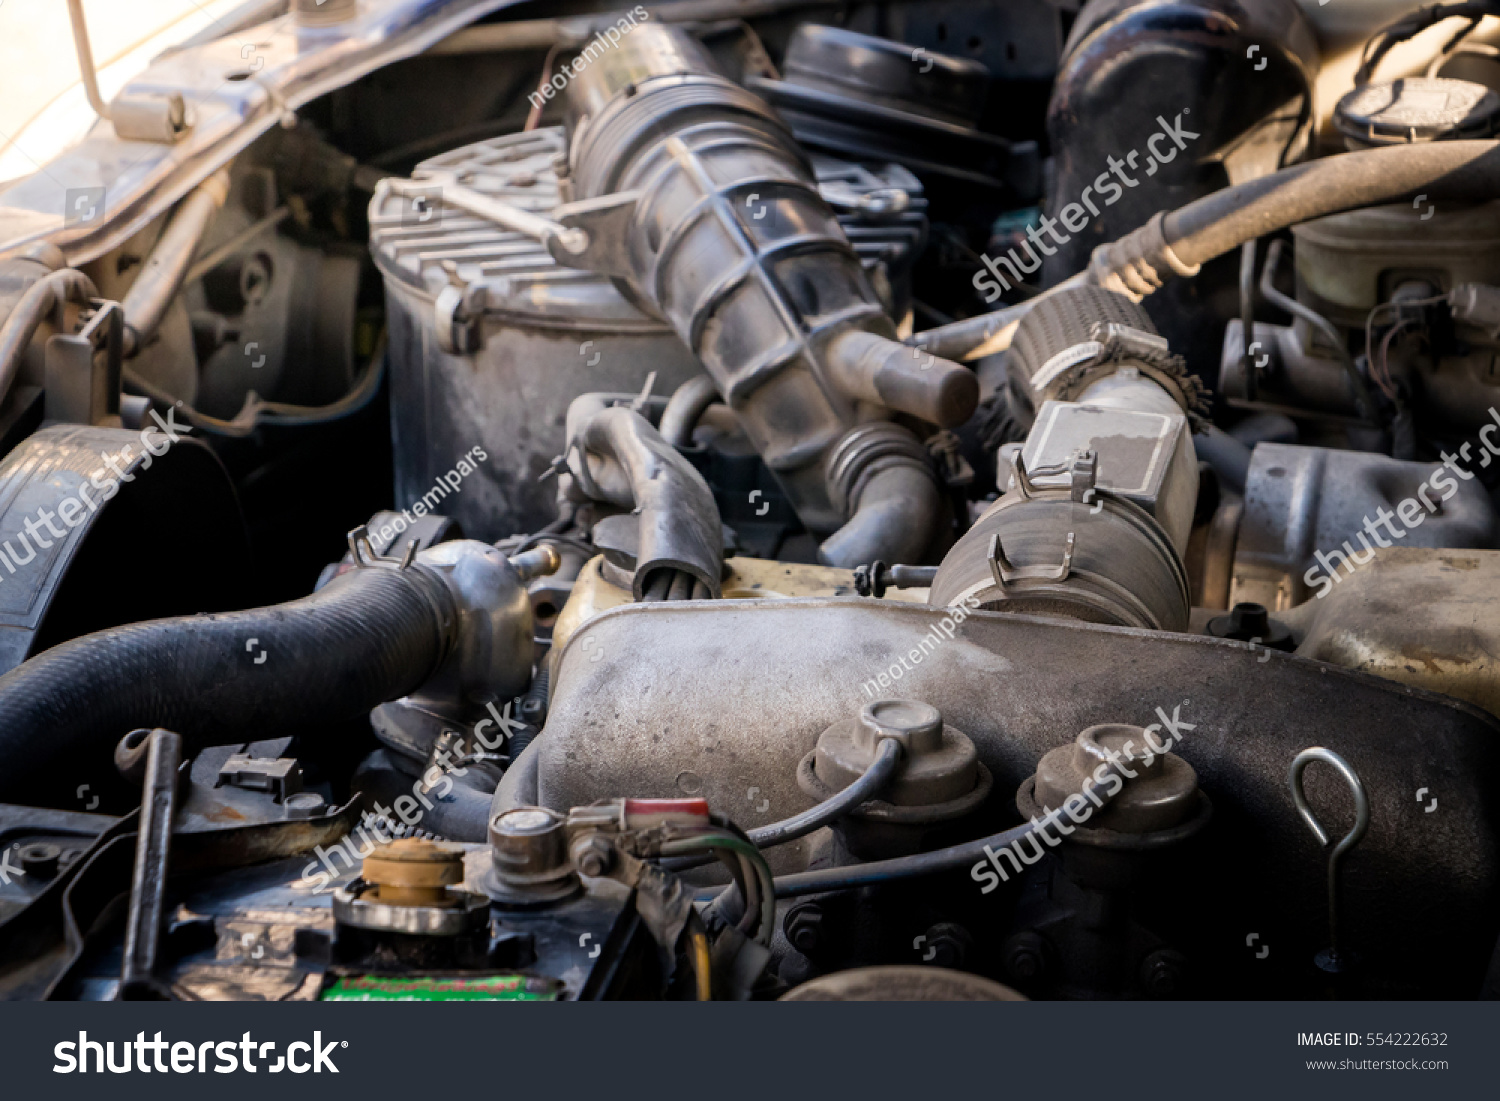 Close Detail Old Car Engine Stock Photo 554222632 - Shutterstock